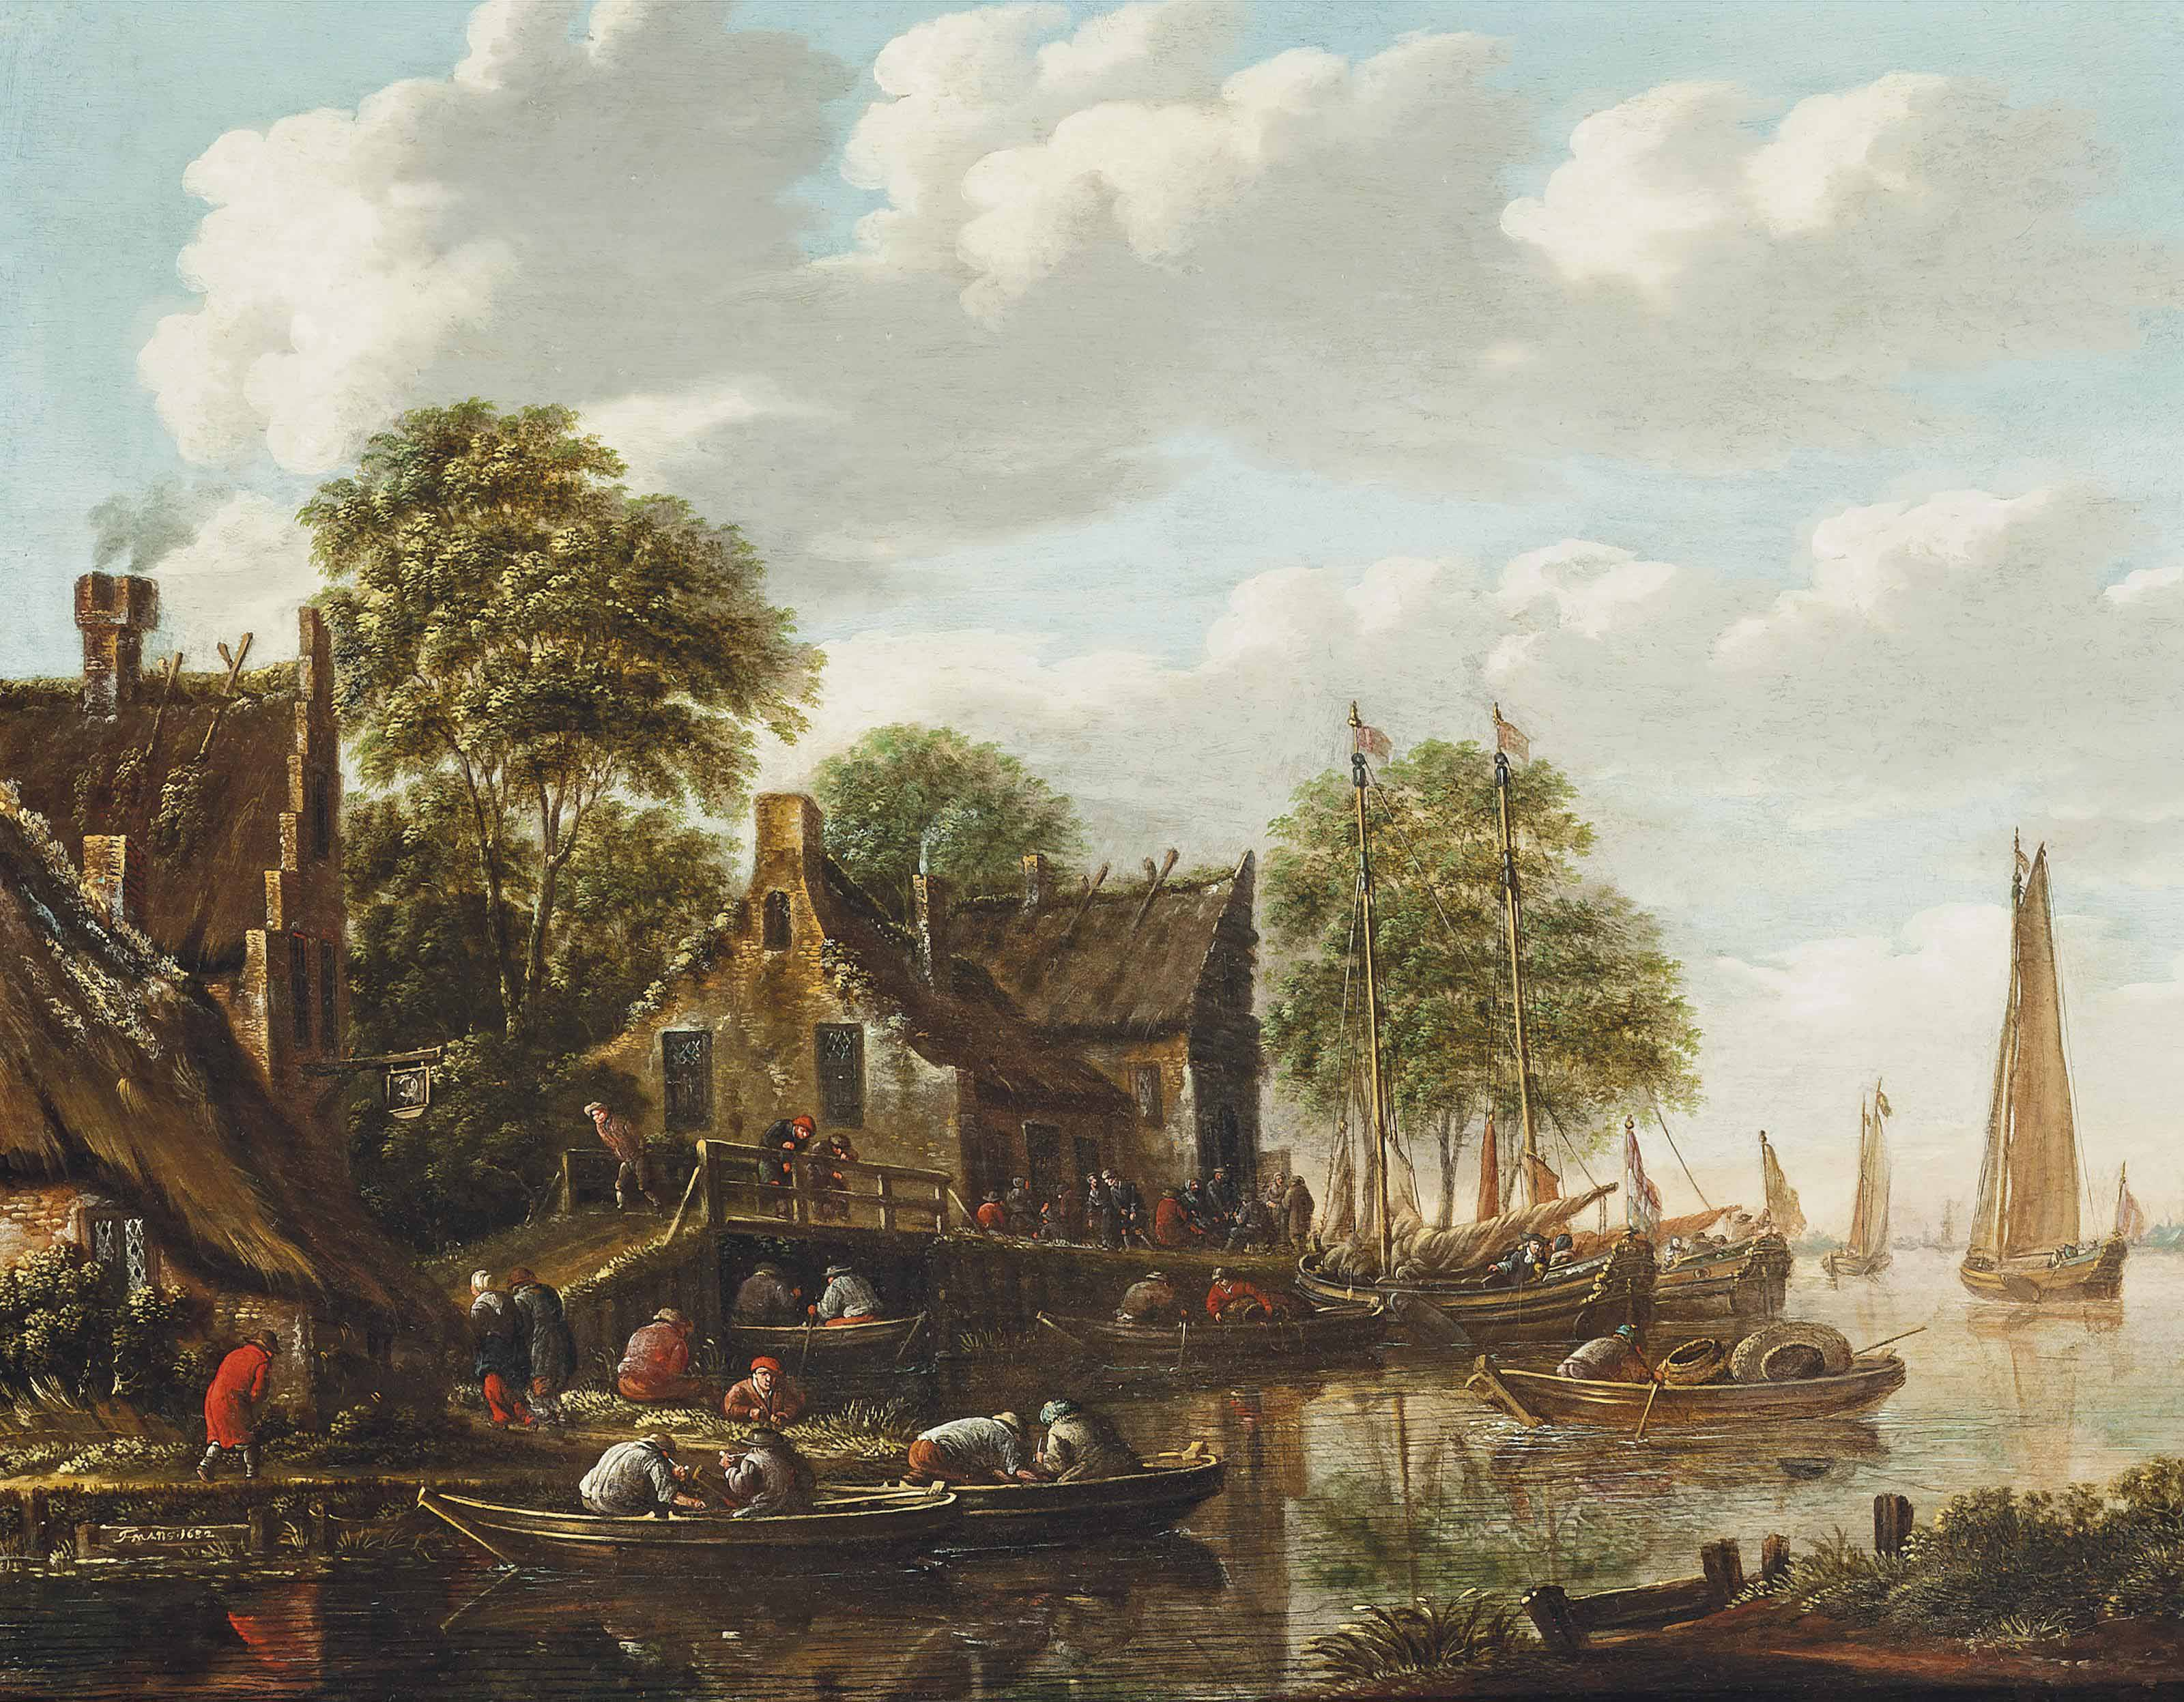 A river landscape with fishermen on boats and other shipping vessels